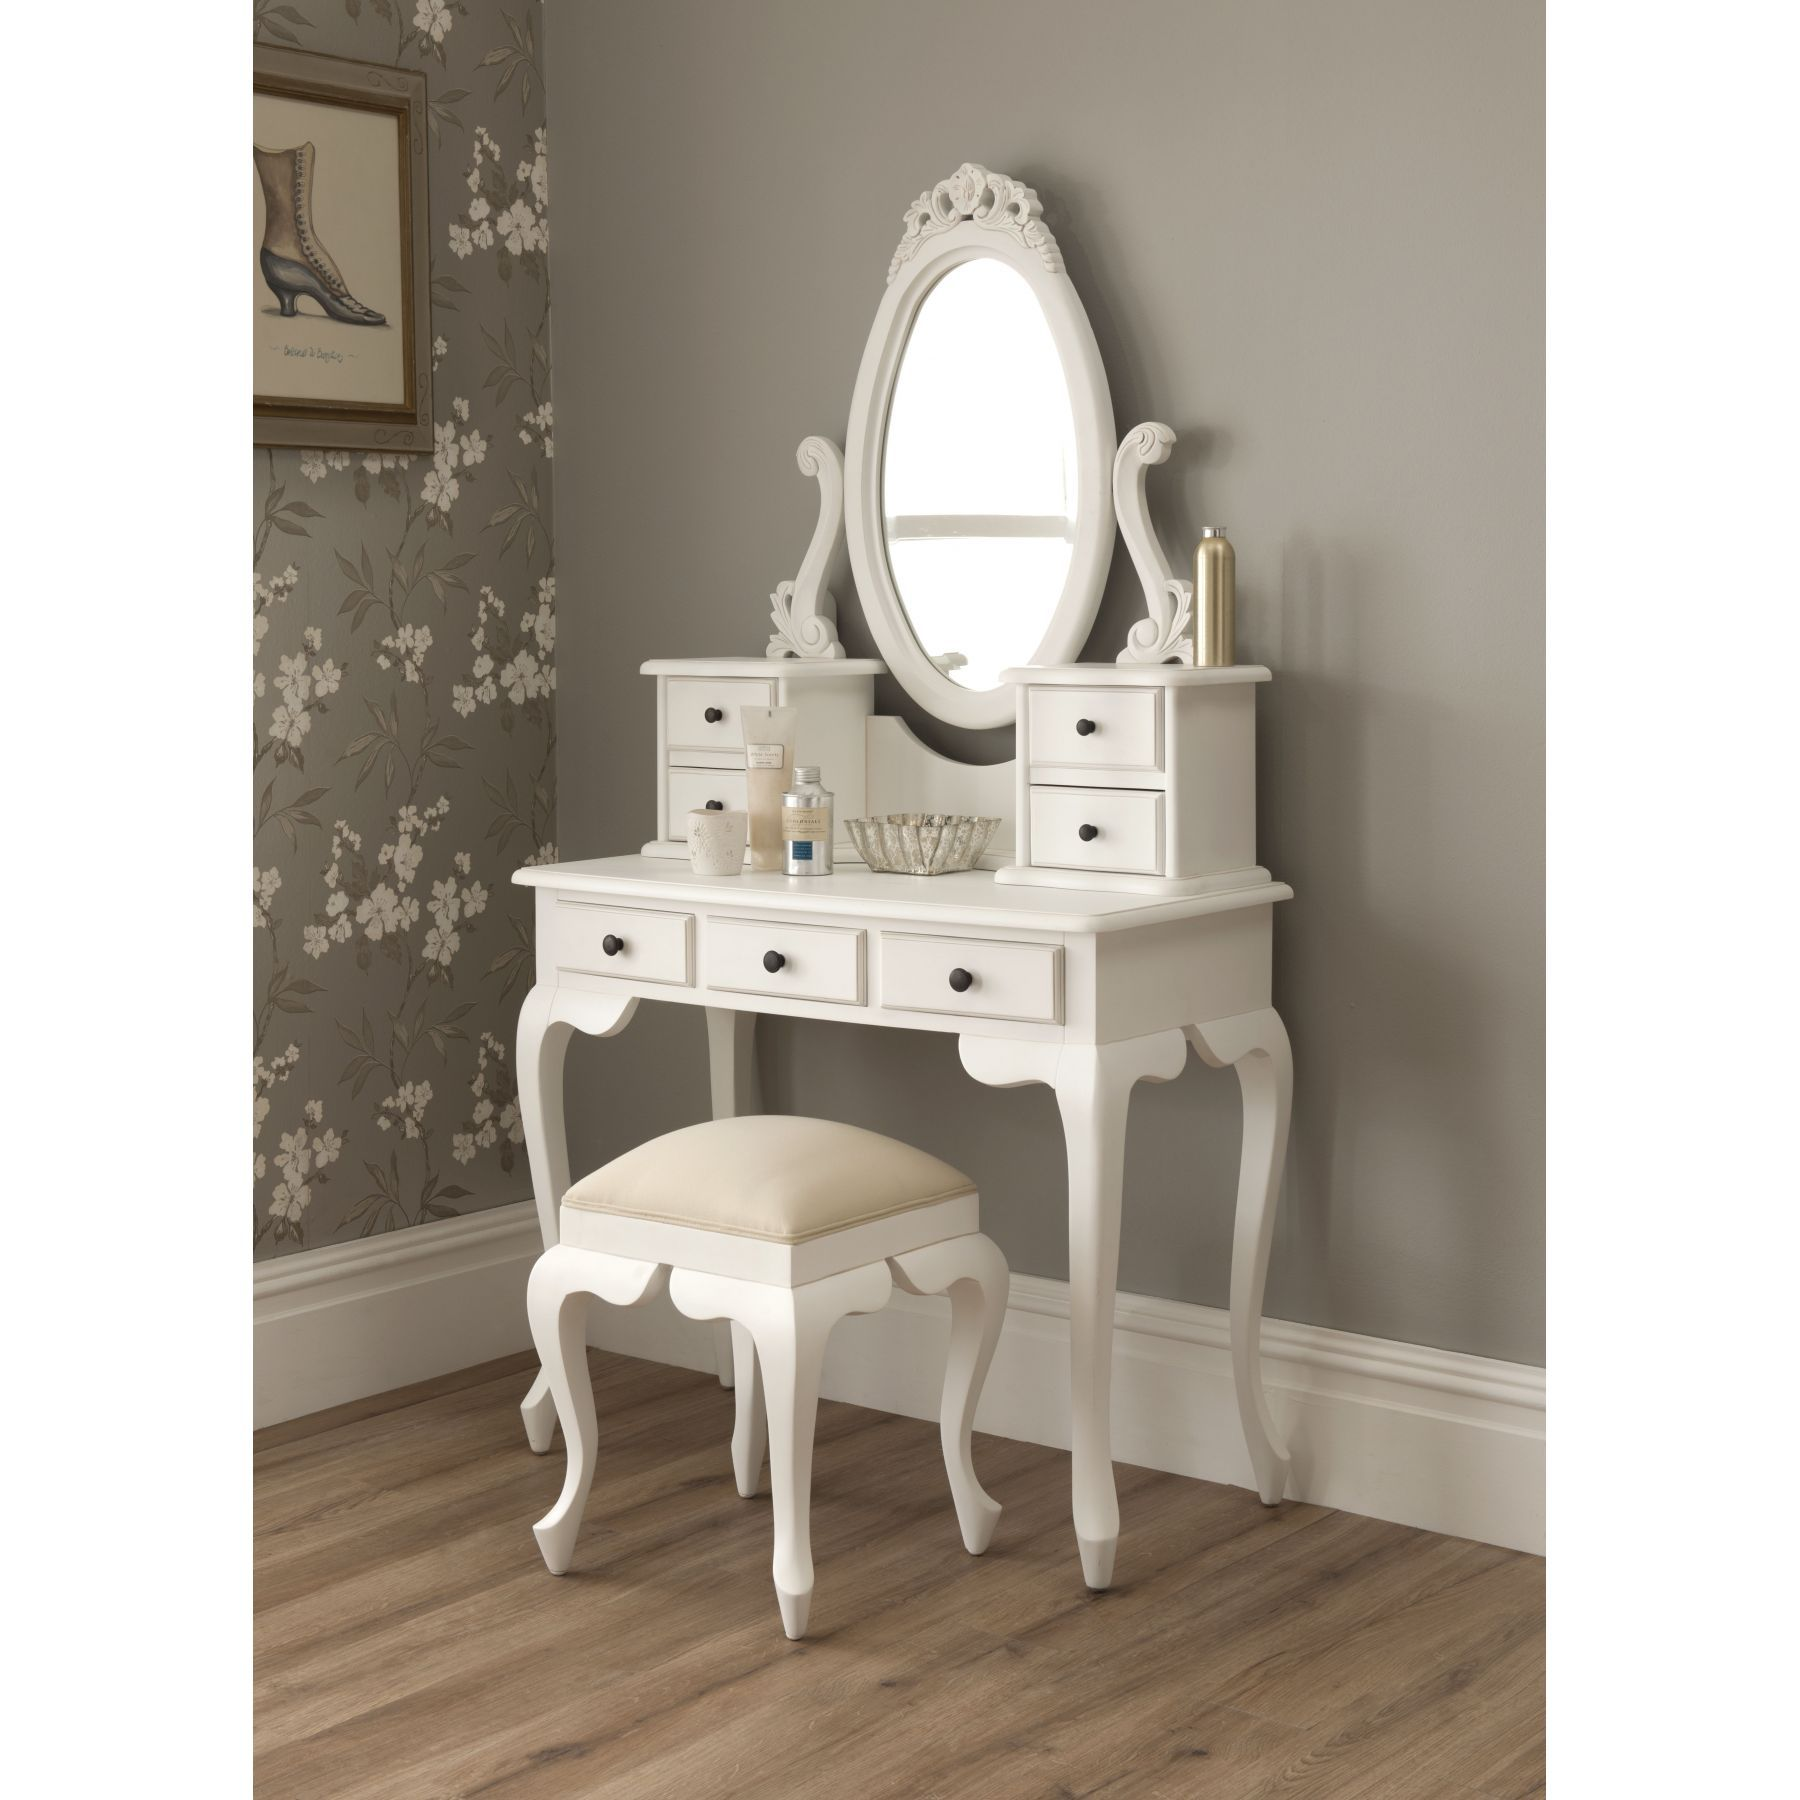 Exceptional Furniture, Astounding Wood Flooring Master Bedroom Vanity Makeup Table Sets  In White Wood ~ IKEA Vanity Ideas Pimping Up Your Appearance